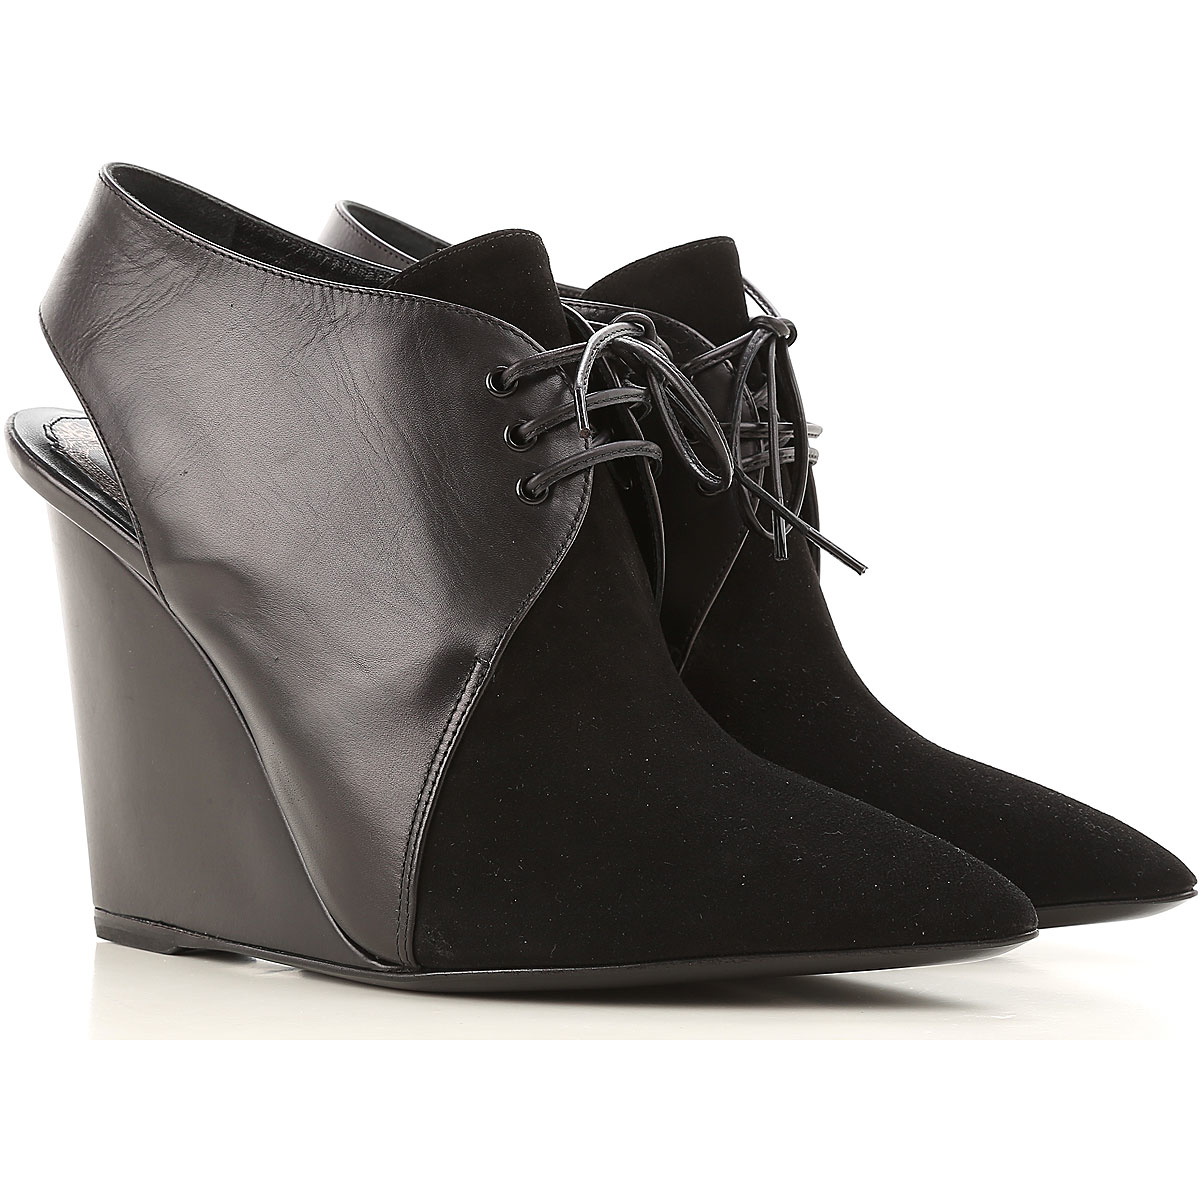 Christian Dior Wedges for Women in Outlet Black Canada - GOOFASH - Womens HOUSE SHOES